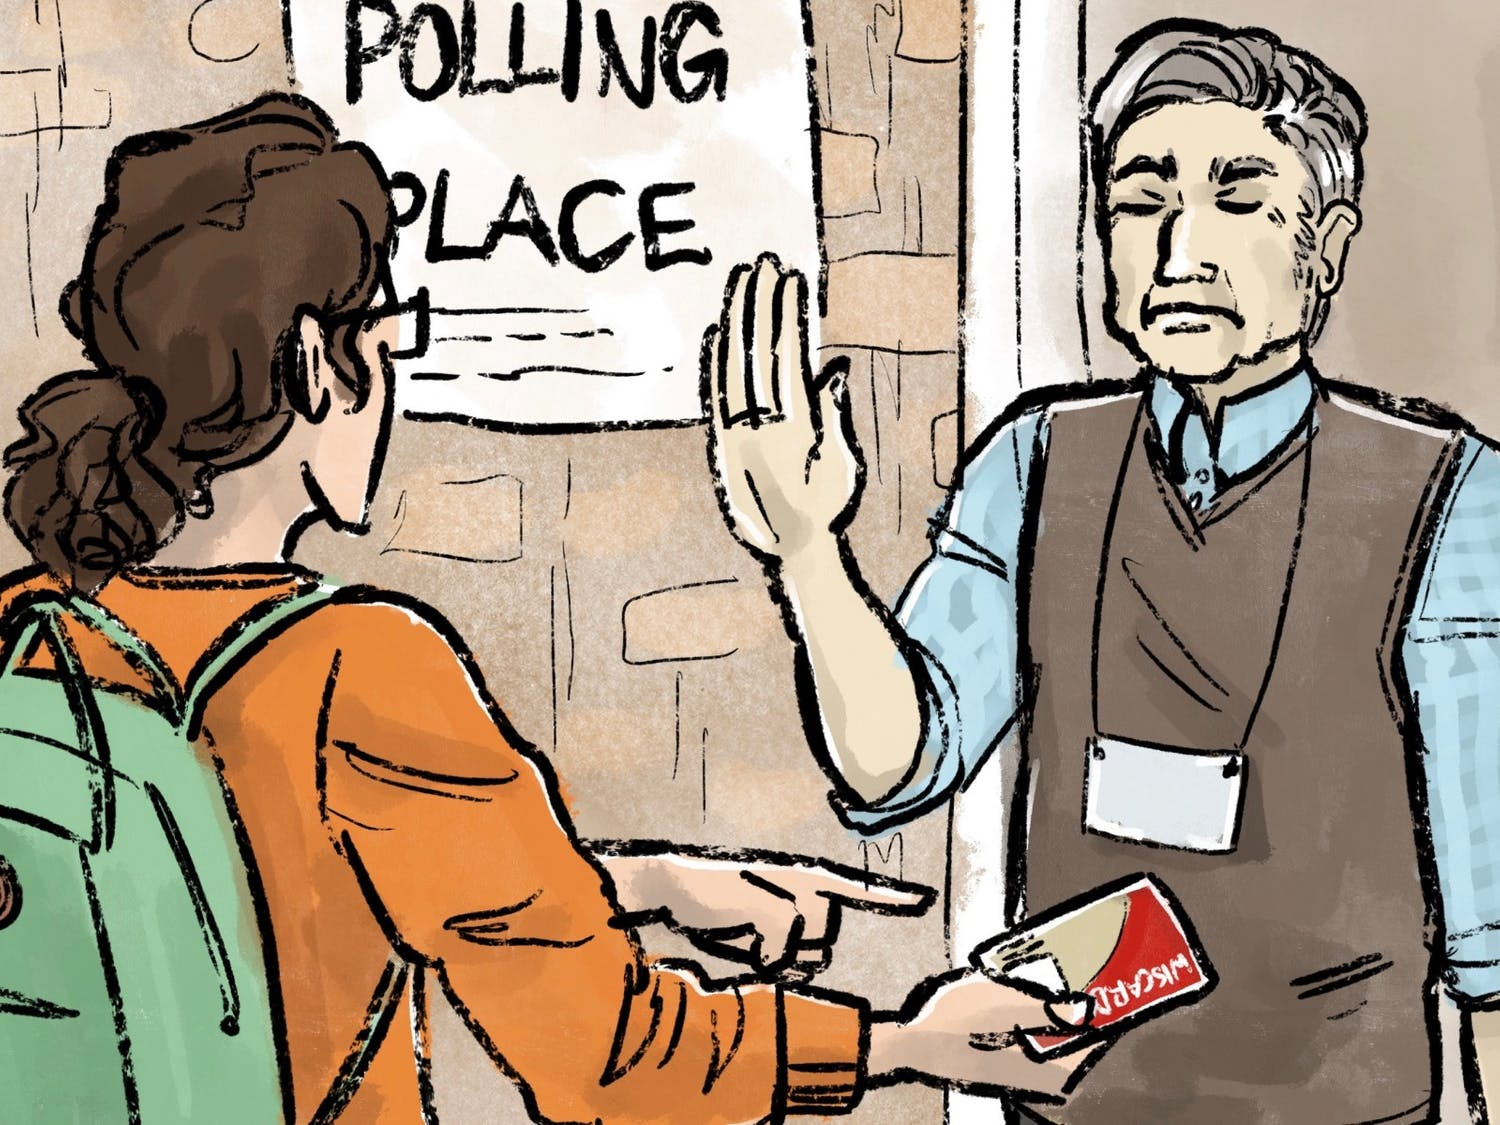 The Andrew Goodman Foundation, along with other advocacy groups, have filed lawsuits in an attempt to reverse discriminatory student ID voter legislation that has deterred many college students from participating in elections.